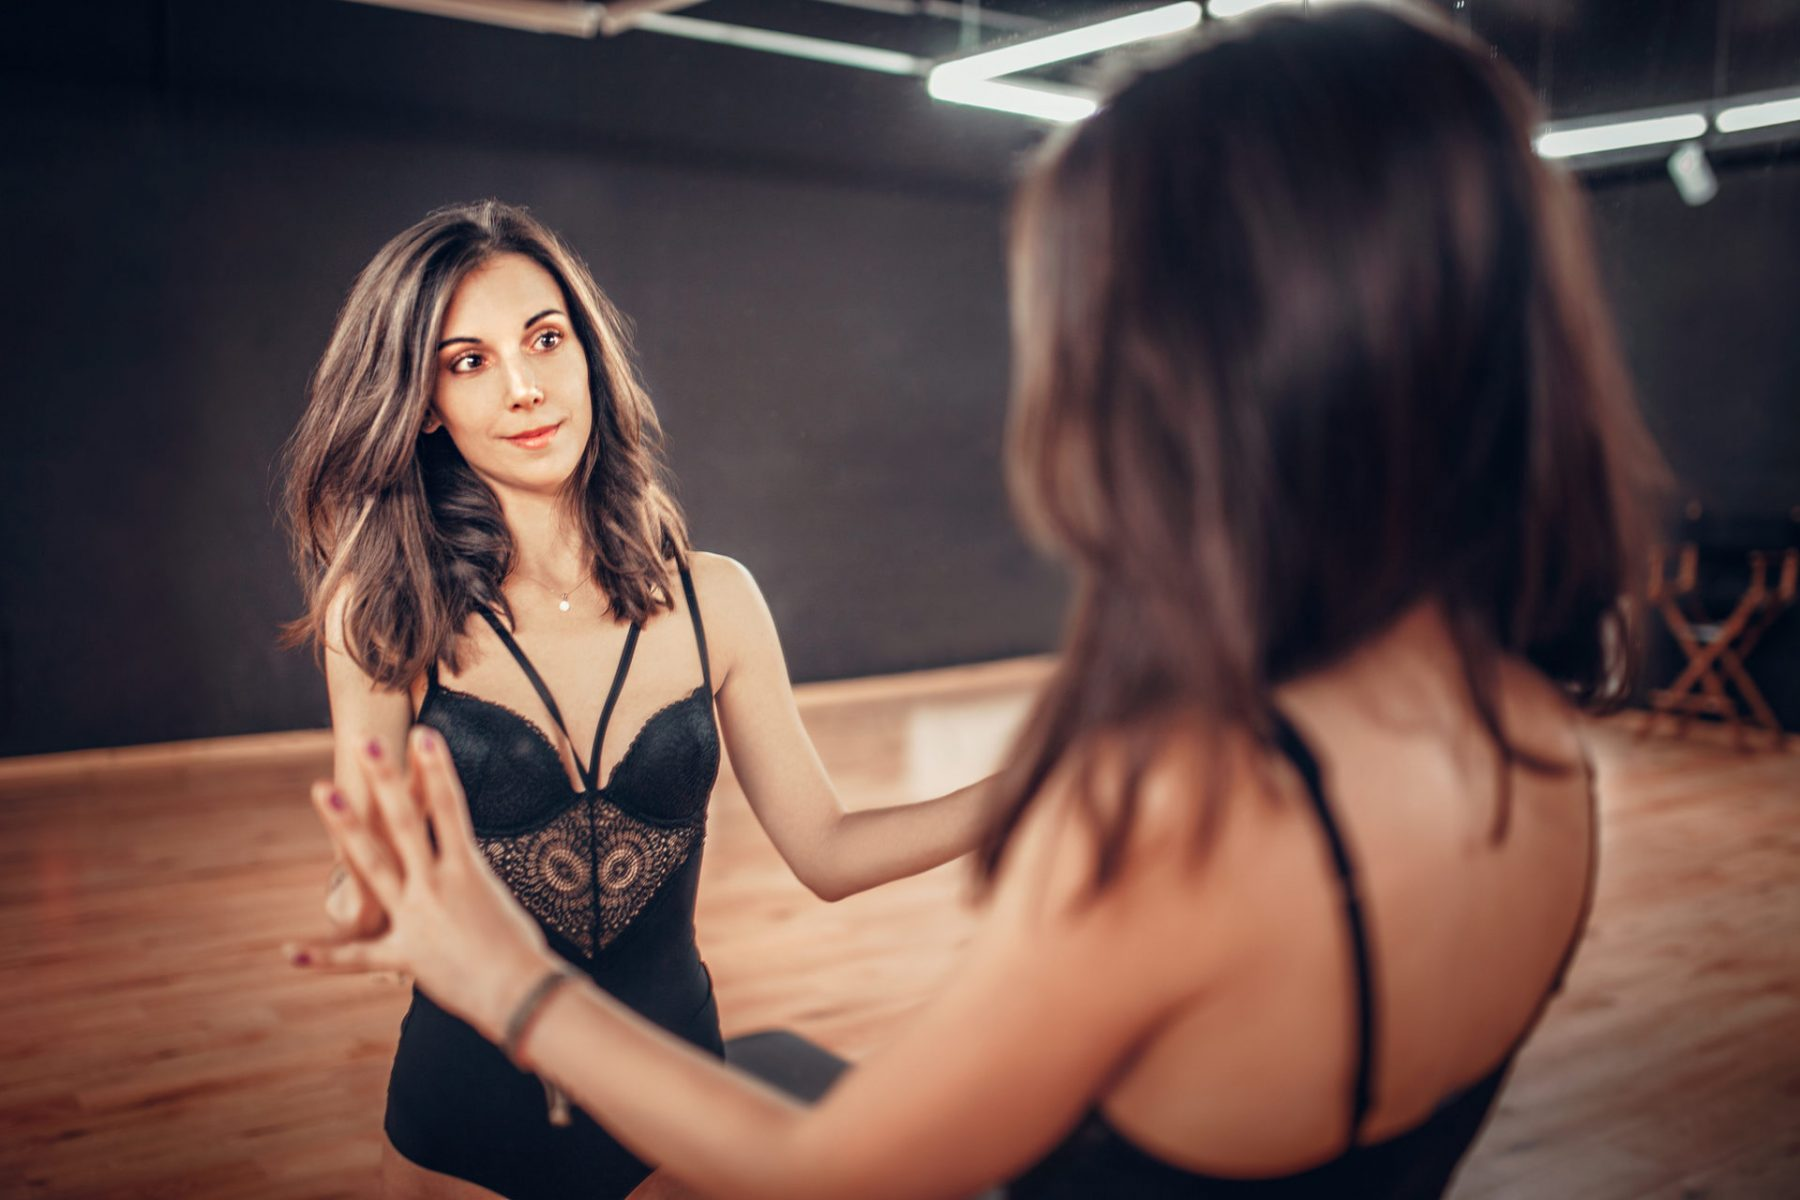 Rosi by the mirror